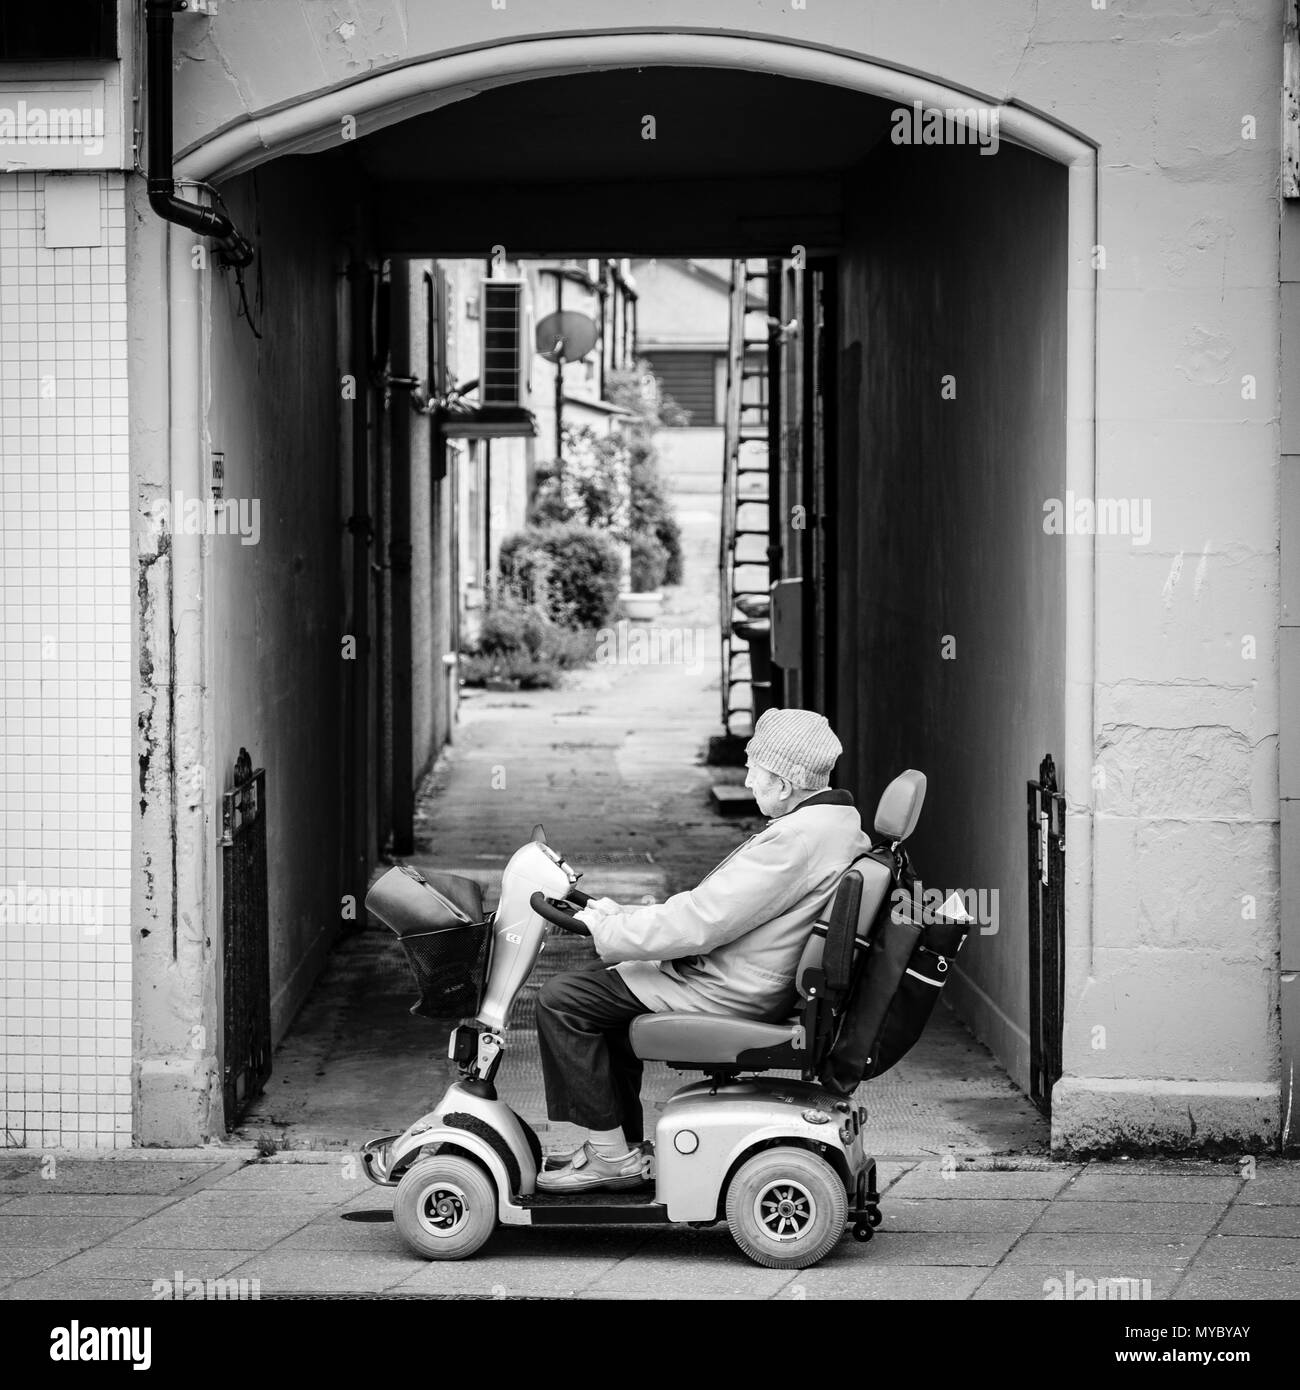 Elderly man on a disability scooter in the Scottish Highland Town of Nairn, UK - Stock Image